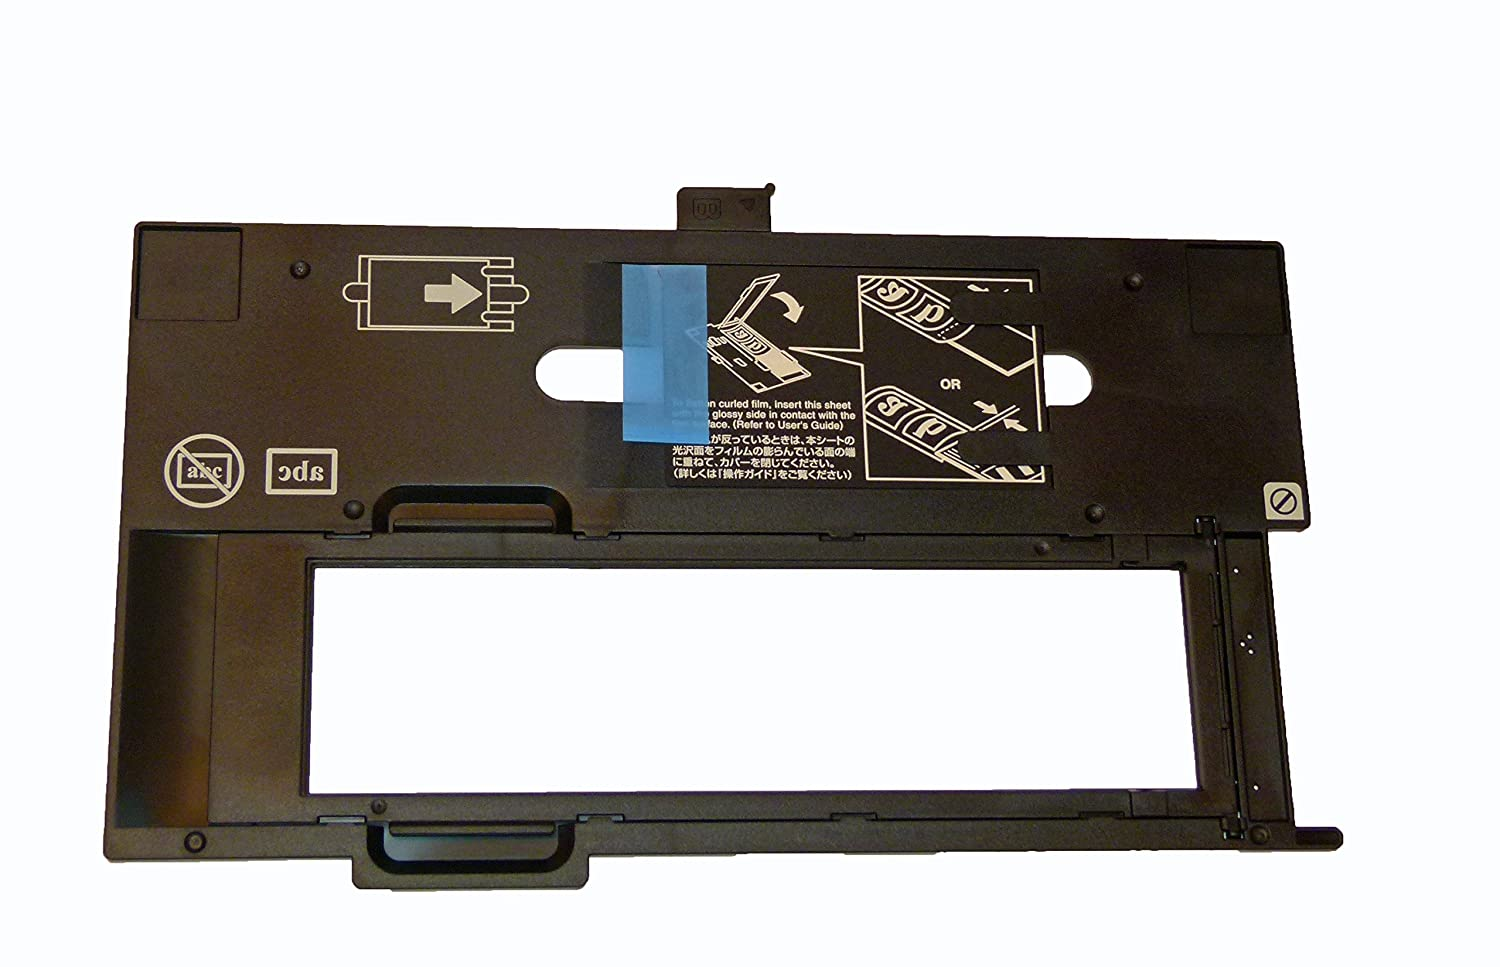 Epson Perfection V600 - 120, 220, 620 Holder - Film Guide